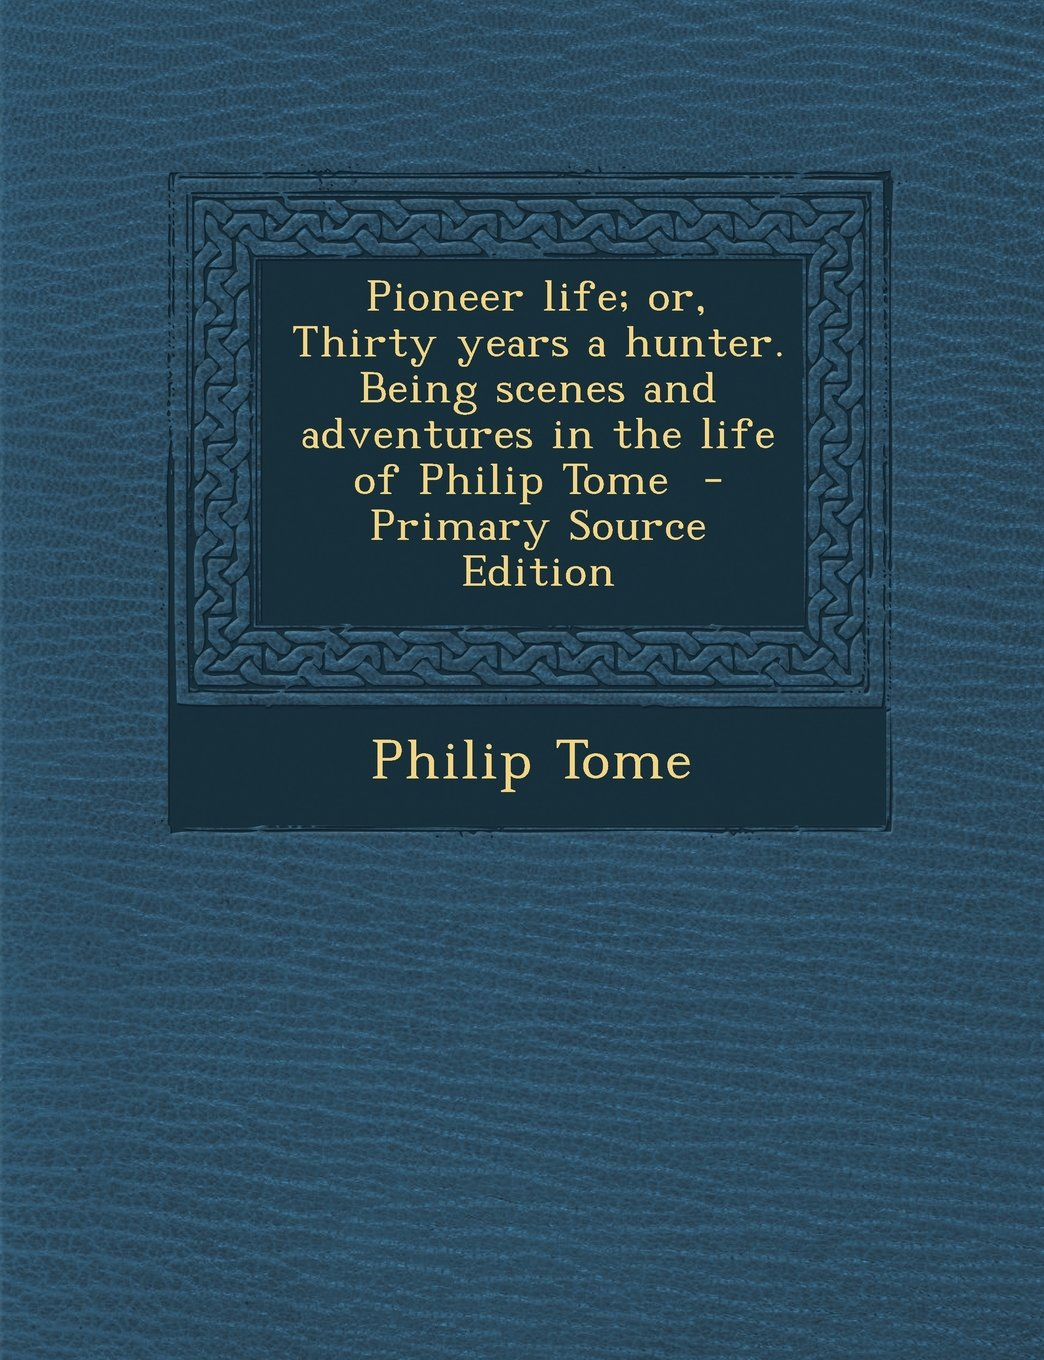 Download Pioneer life; or, Thirty years a hunter. Being scenes and adventures in the life of Philip Tome ebook